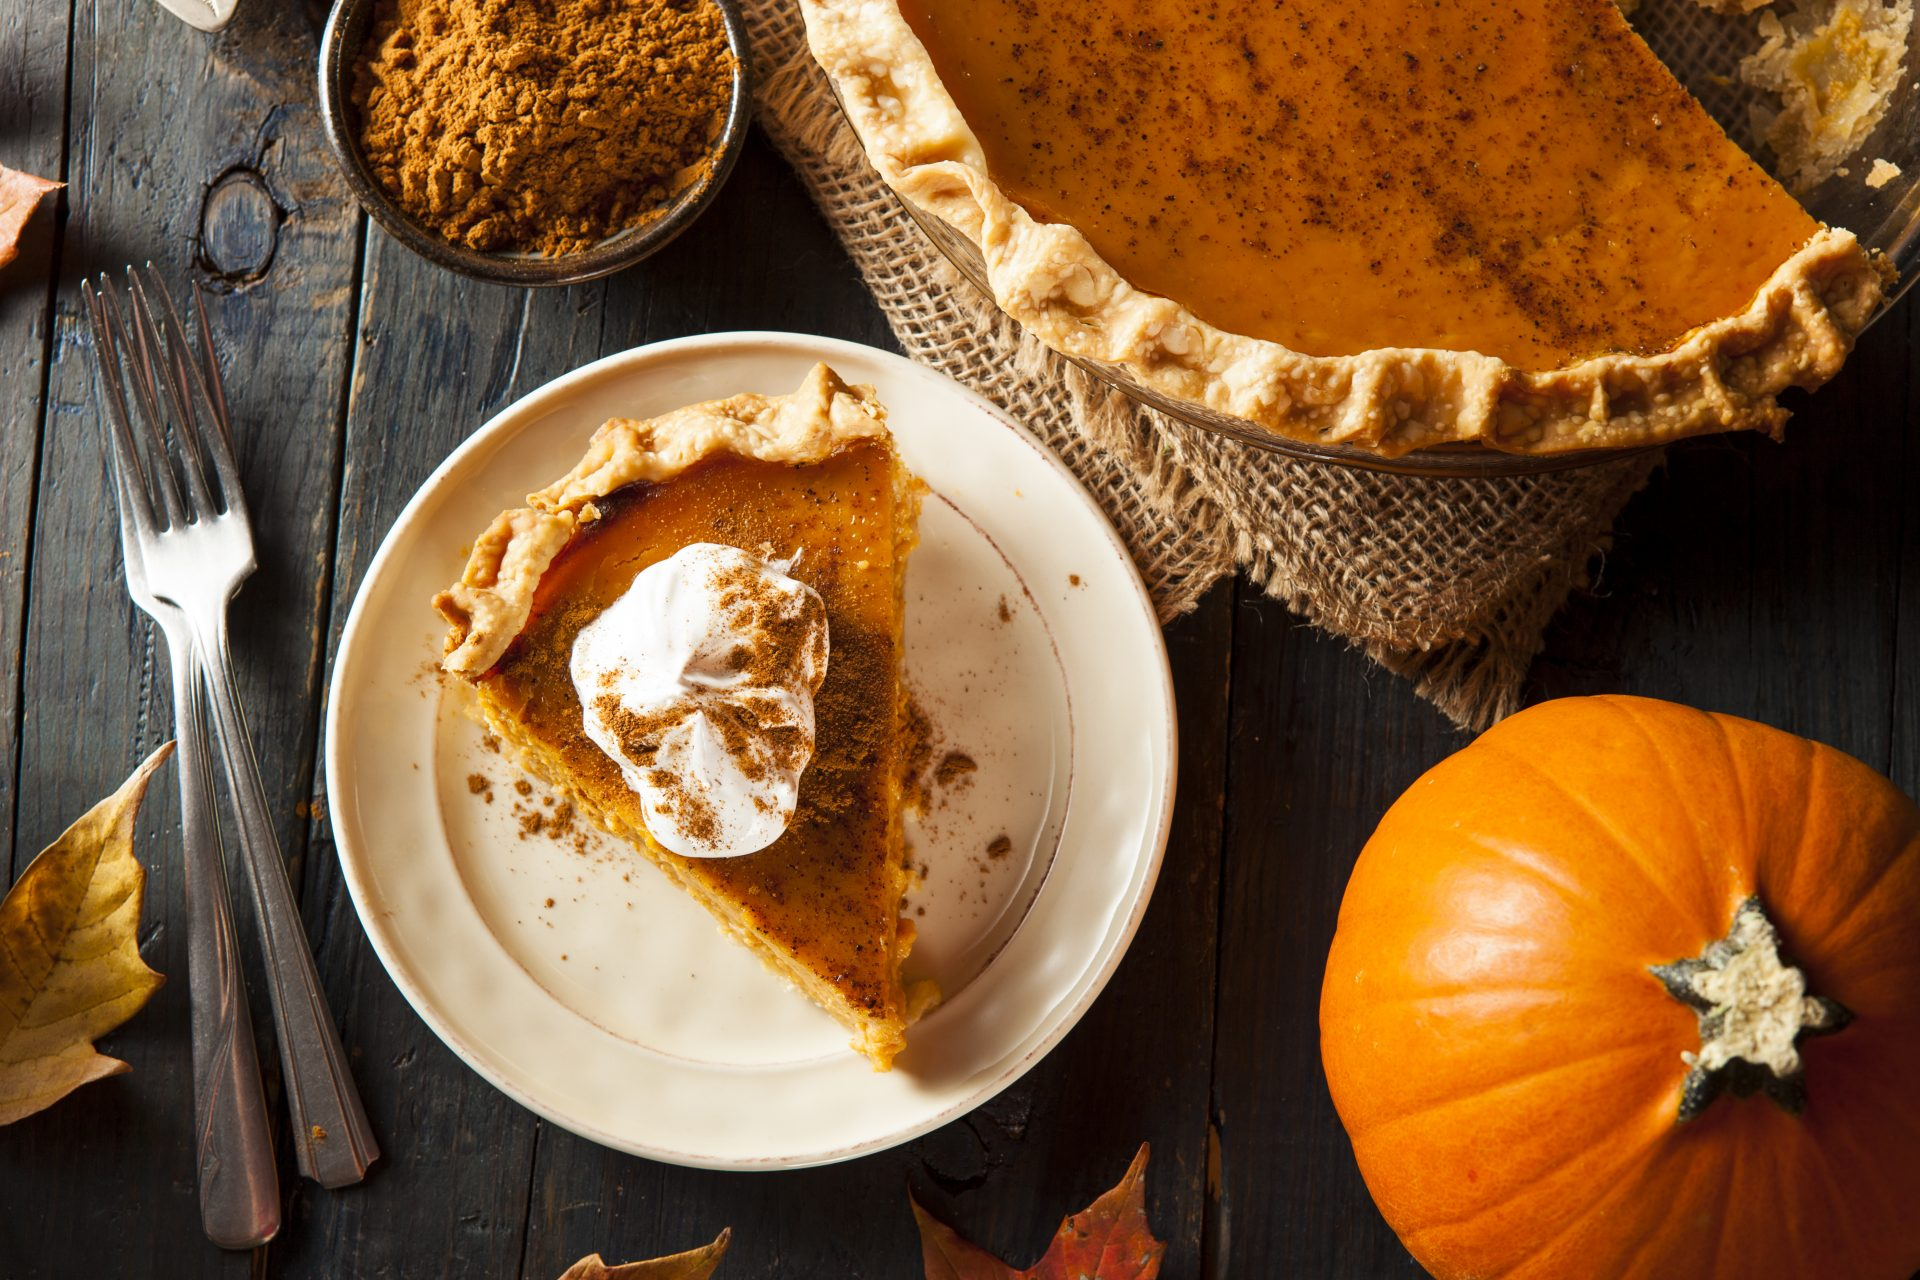 Appreciation of food, family, and friends on Thanksgiving Day